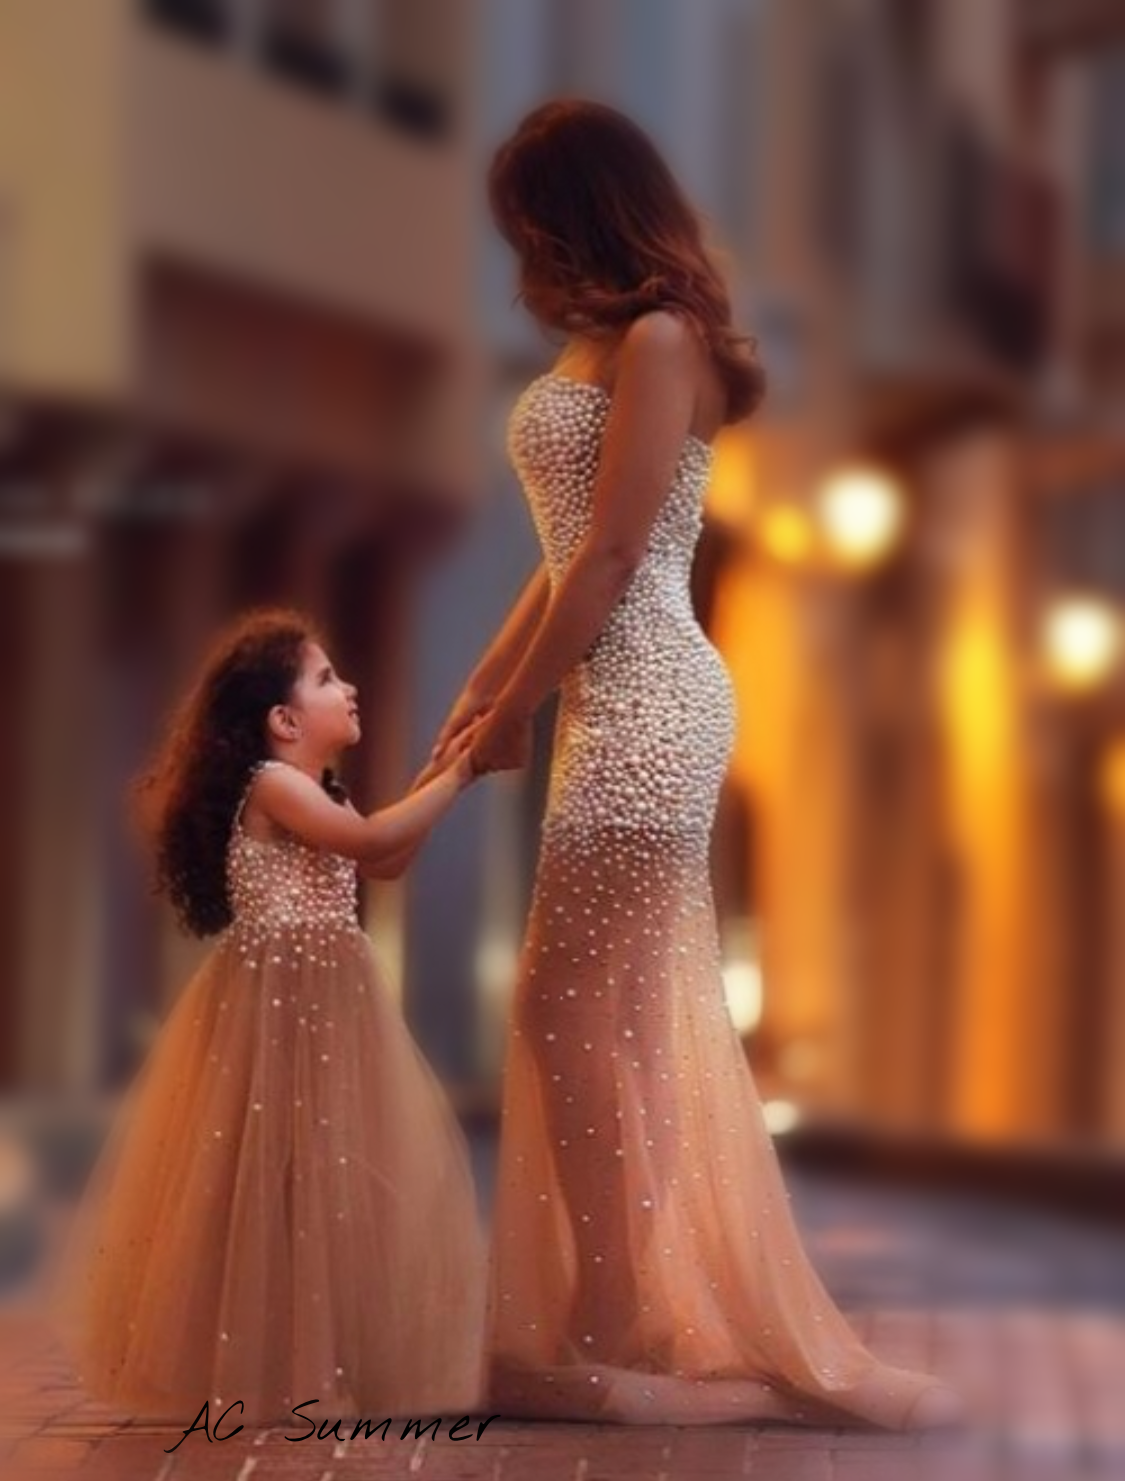 Dress for wedding party female  Pin by Summer on Cute family outfits  Pinterest